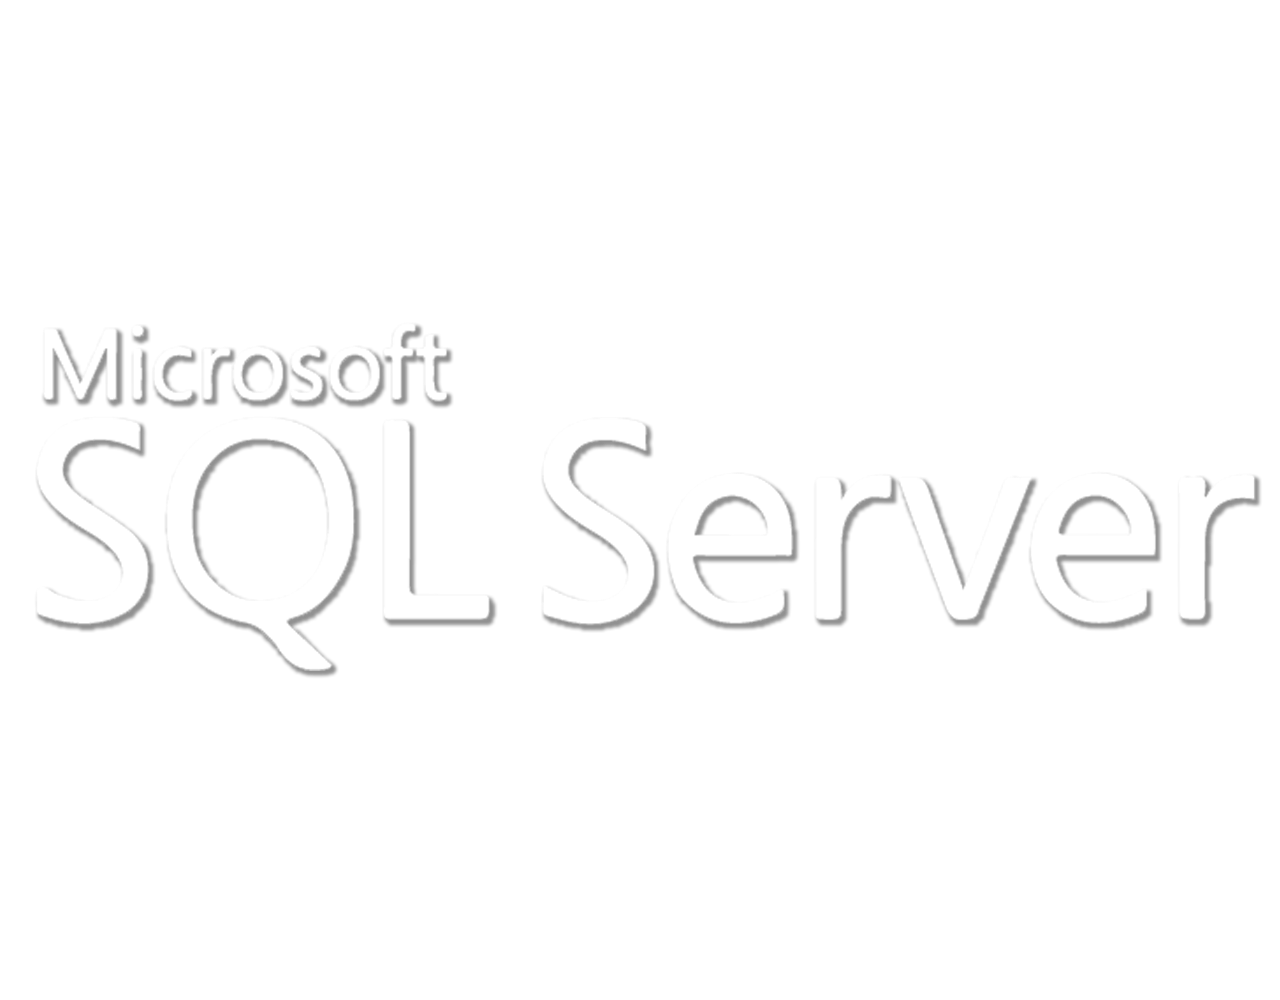 Logo Microsoft SQL Server Transparent Full Stack Page Metas